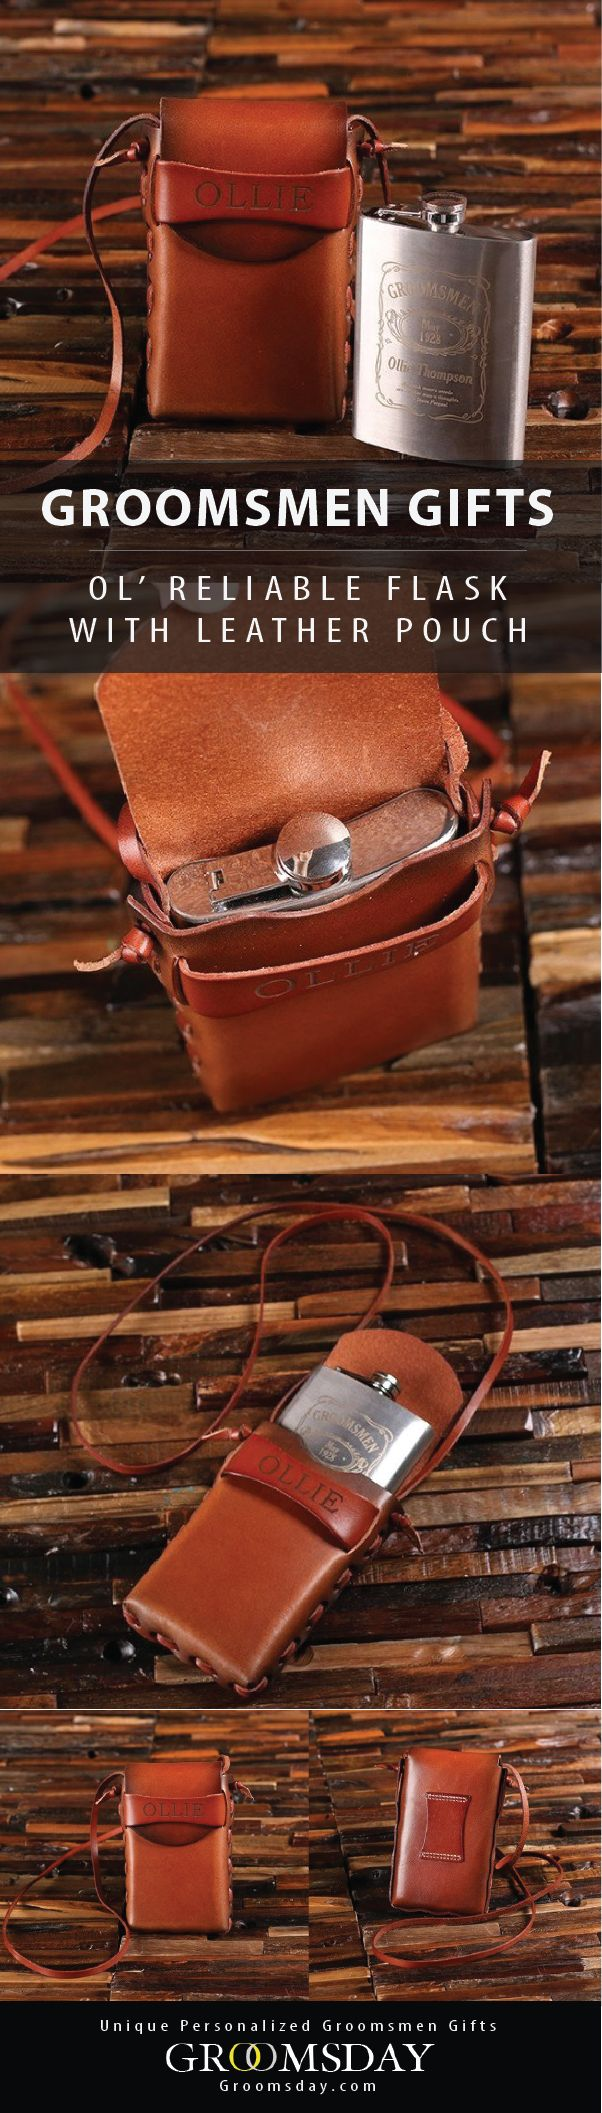 This personalized genuine leather pouch holds an engraved 8oz hip flask for on the go sipping. Perfect for your next camping-themed bachelor party, or with your jet-setting travel bros. Be sure to pin and follow for more travel-worthy groomsmen gifts    Groomsday.com